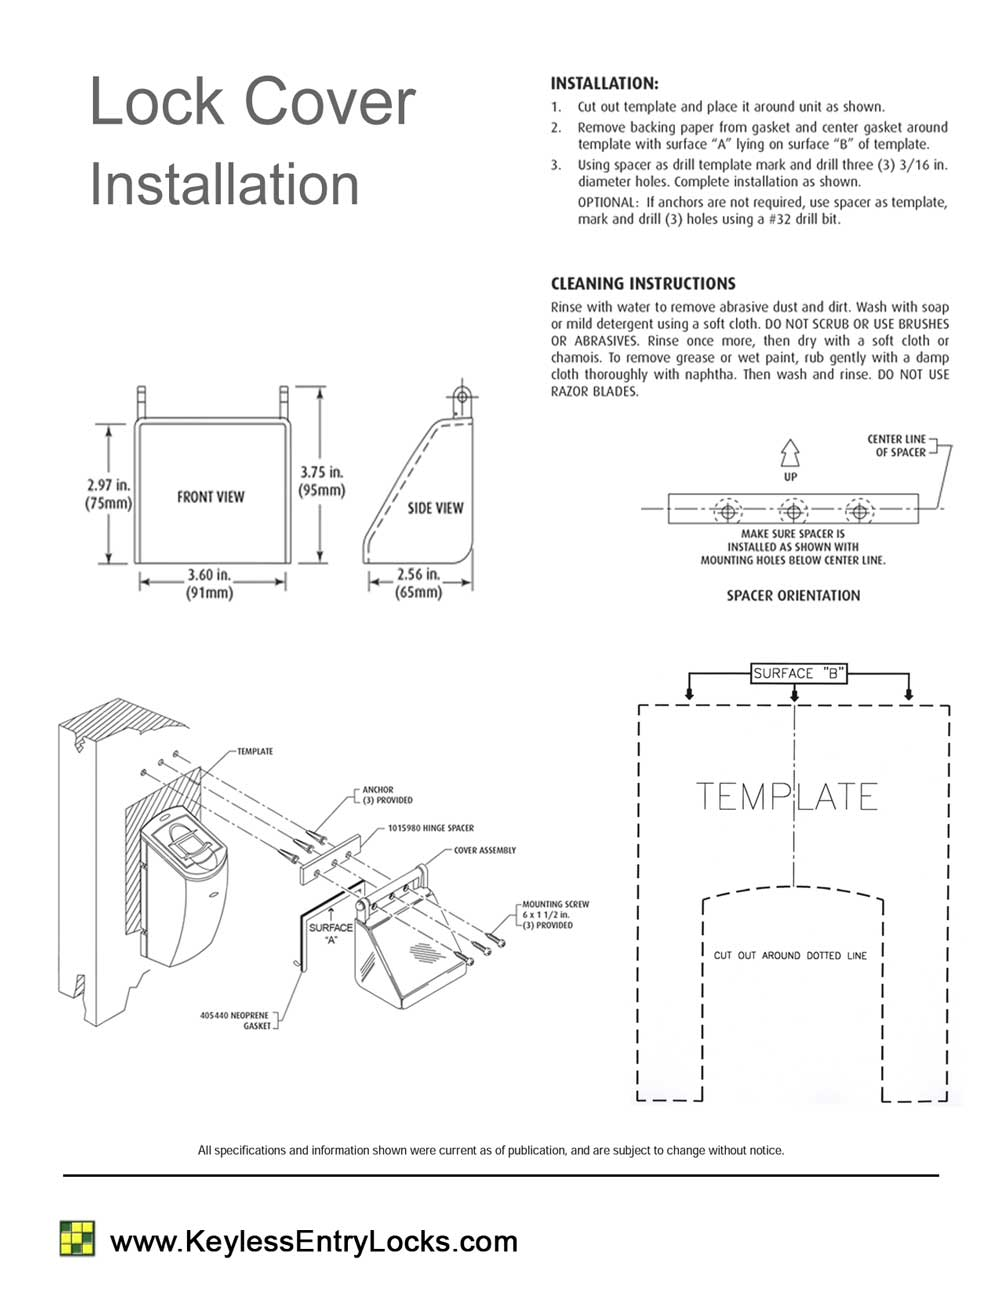 Polycarbonate Lock Cover - Installation Instructions & Template